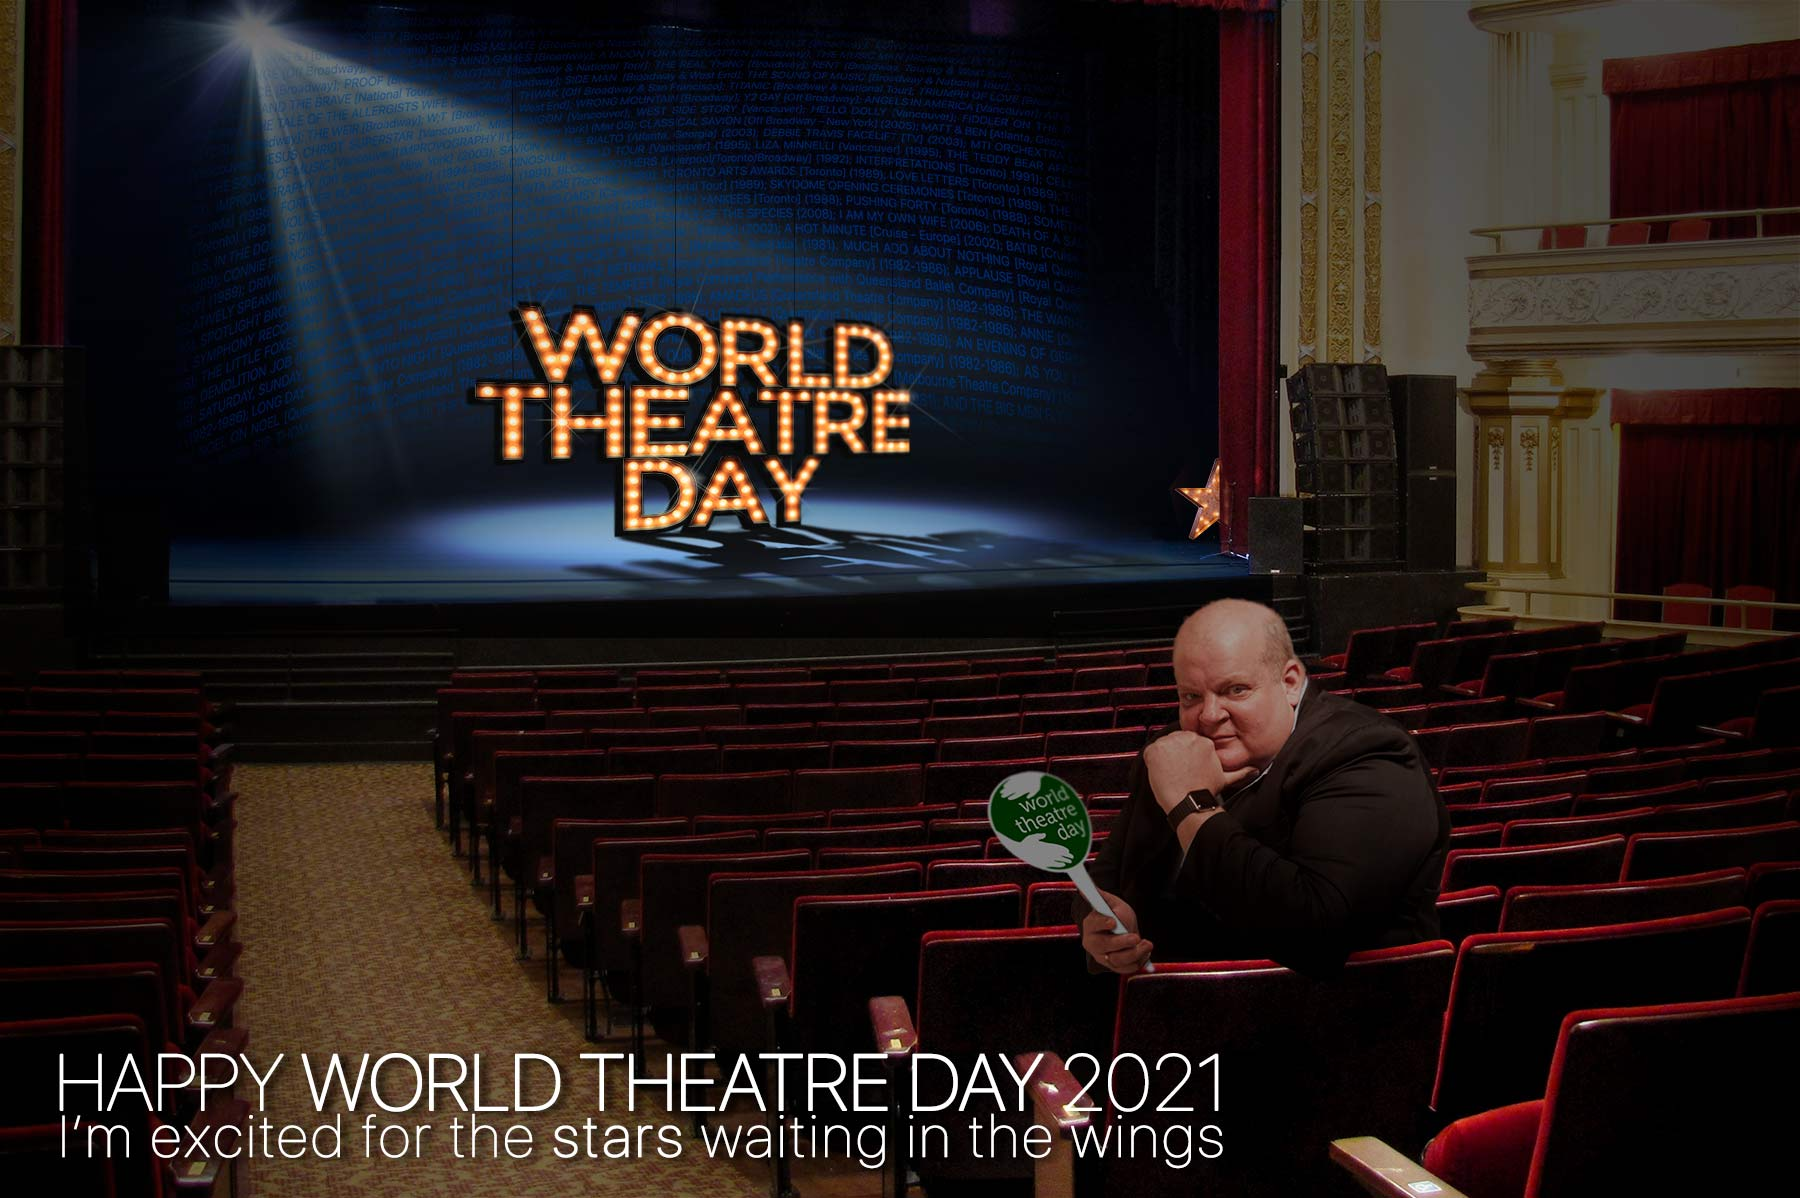 Happy WORLD THEATRE DAY... I'm excited for the stars waiting in the wings!